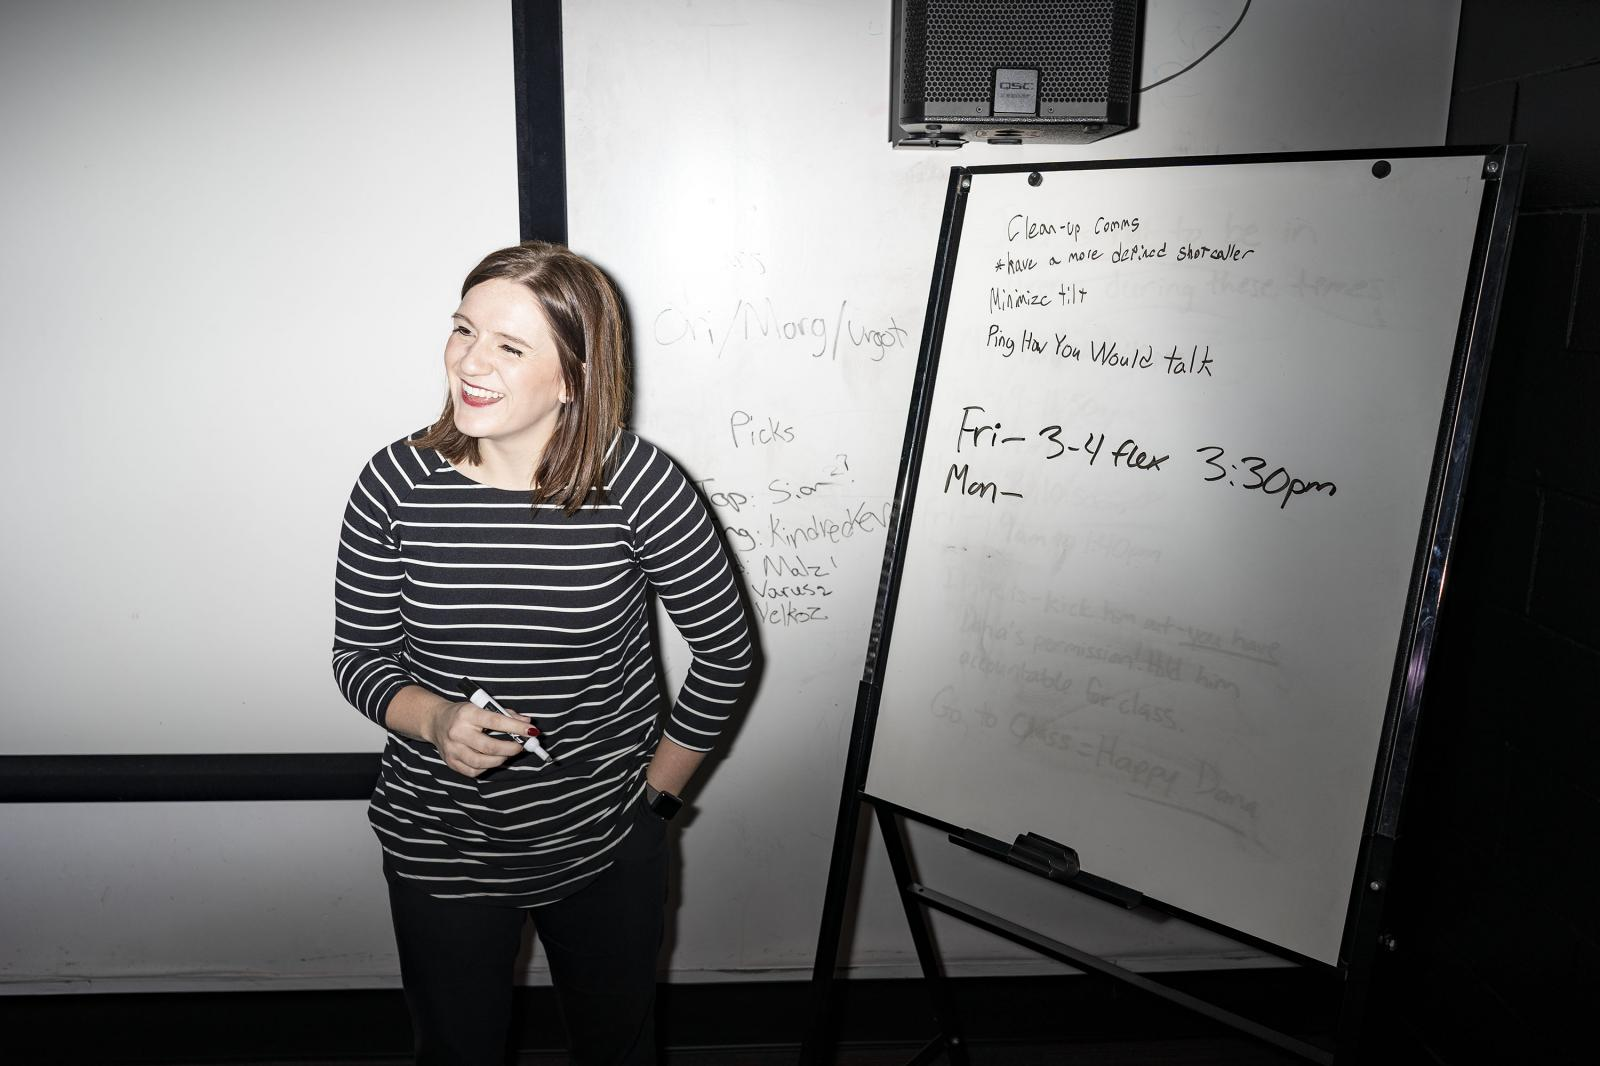 DES MOINES, IOWA - OCTOBER 18, 2018: Dana Hustedt goes over coaching notes with Grand View University's esports team in Des Moines, Iowa on Thursday, October 18, 2018. Hustedt is the nation's first university Director of Esports. CREDIT: KC McGinnis for The New York Times